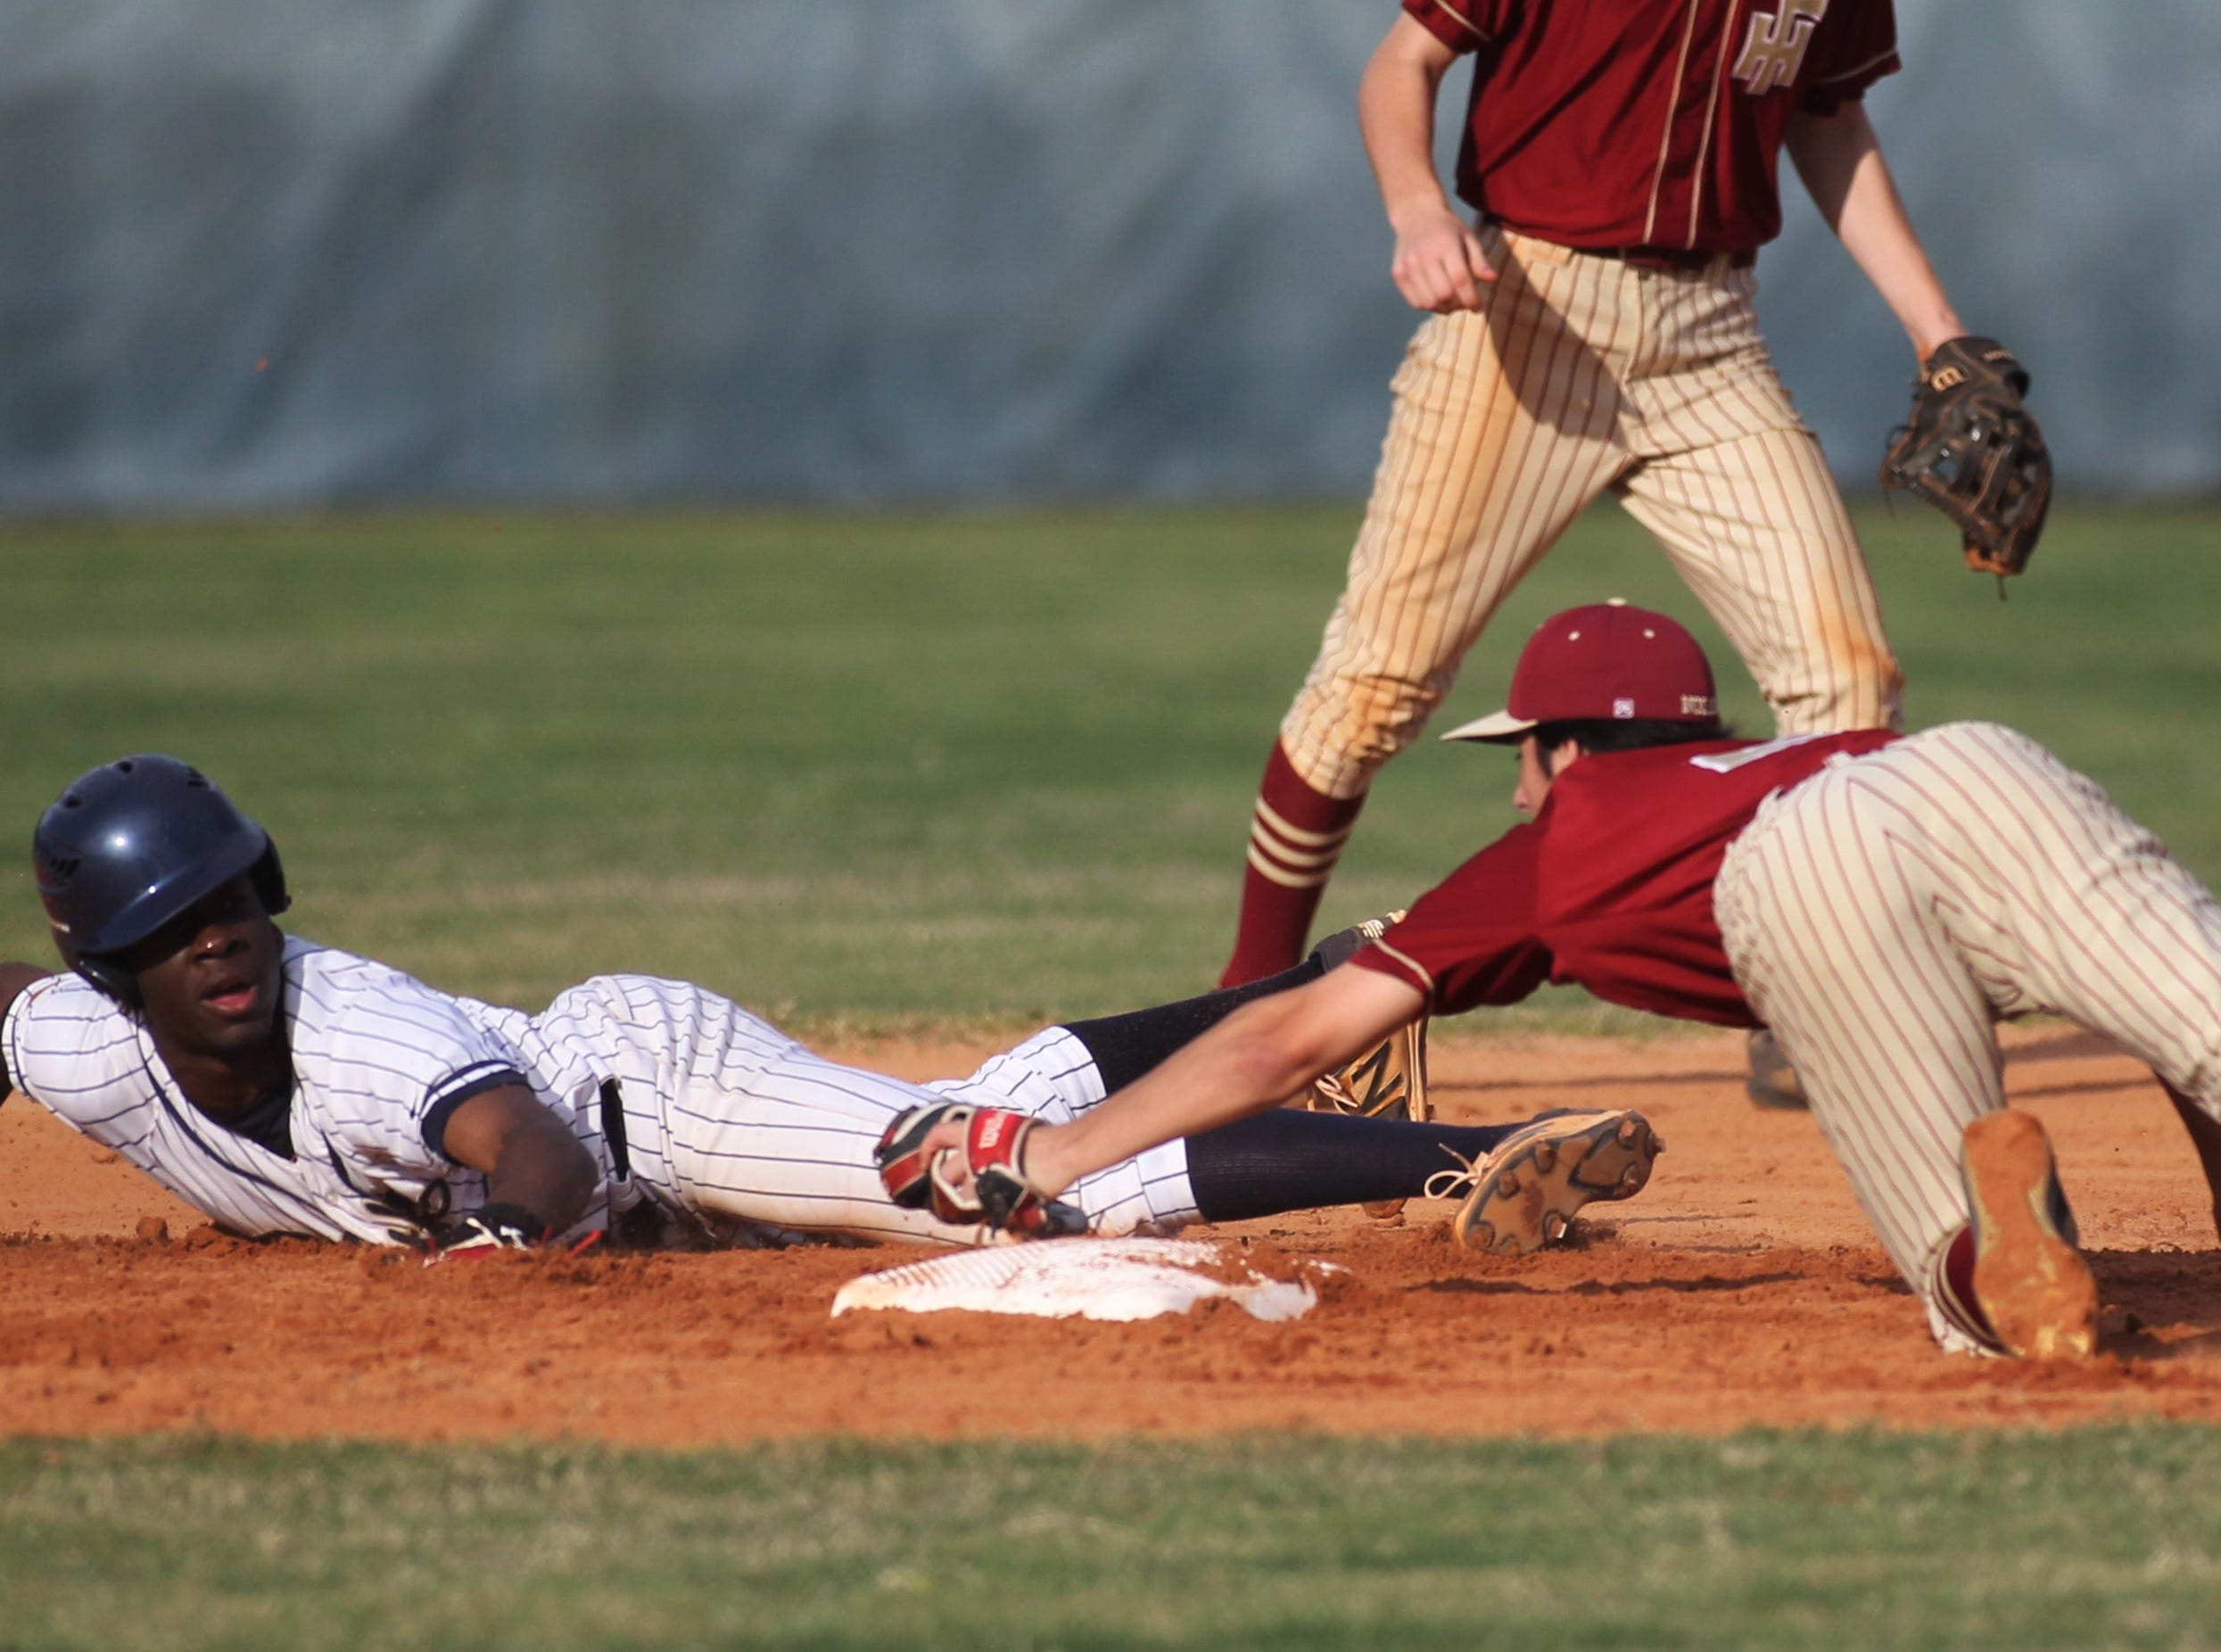 St. John Paul II senior Logan Roberts is tagged out on a steal attempt as Florida High won 11-3 on the road at St. John Paul II on Tuesday, April 3, 2010.